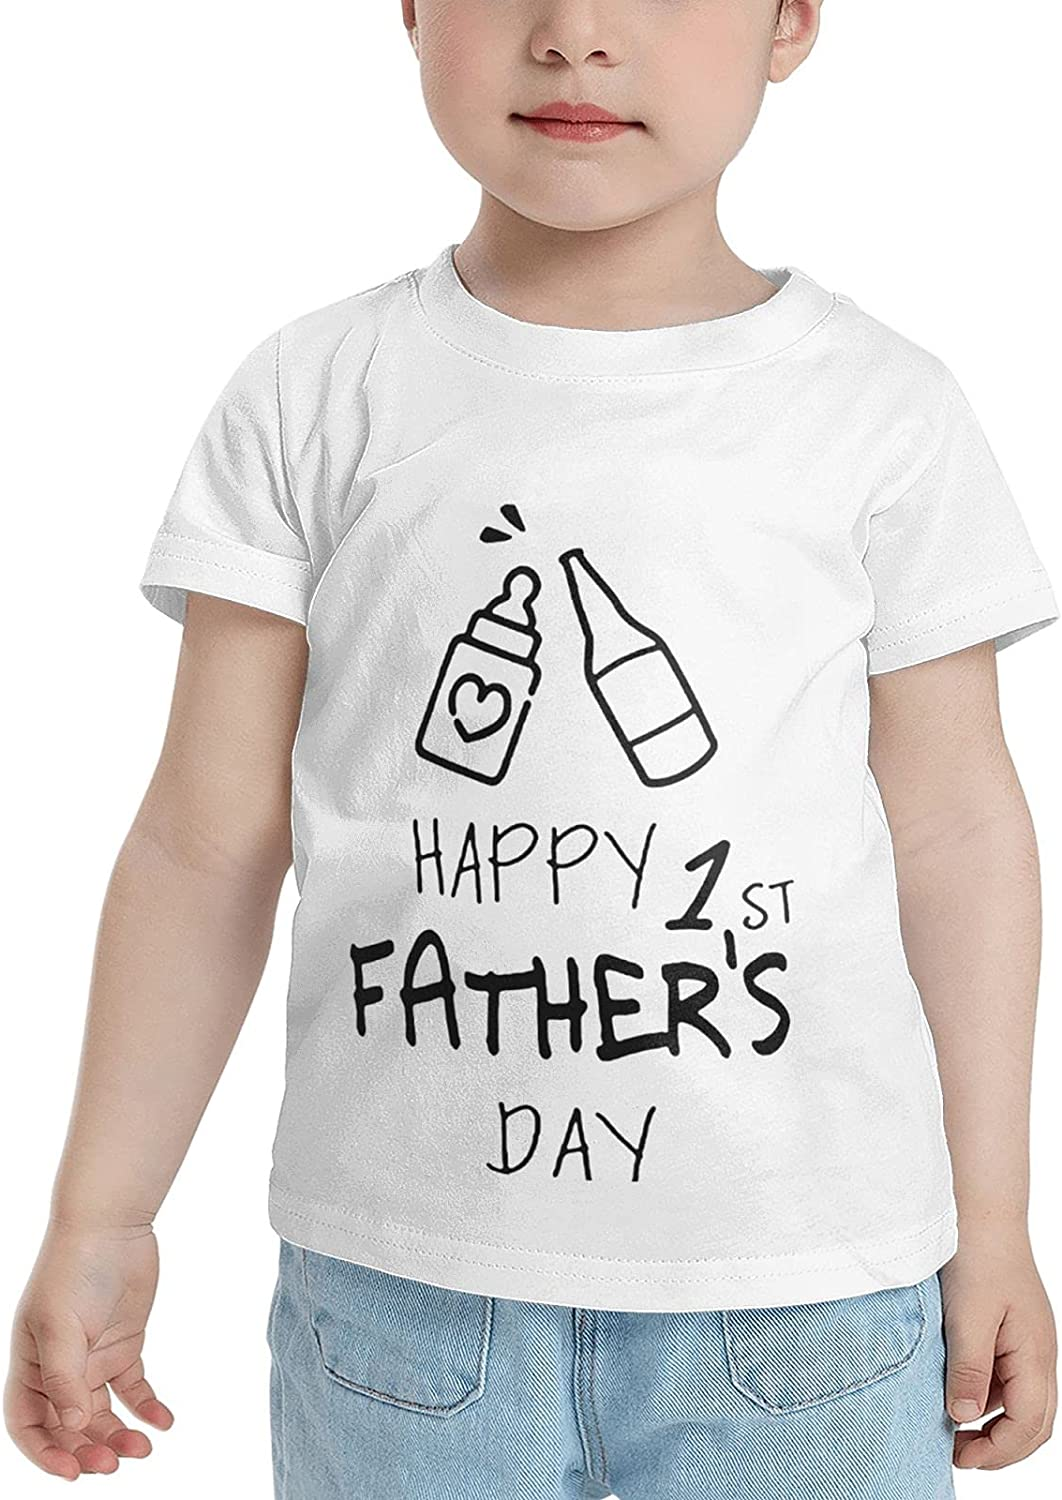 Happy 1 St Fathers Day T-Shirts Novelty for Girls Tees with Cool Designs